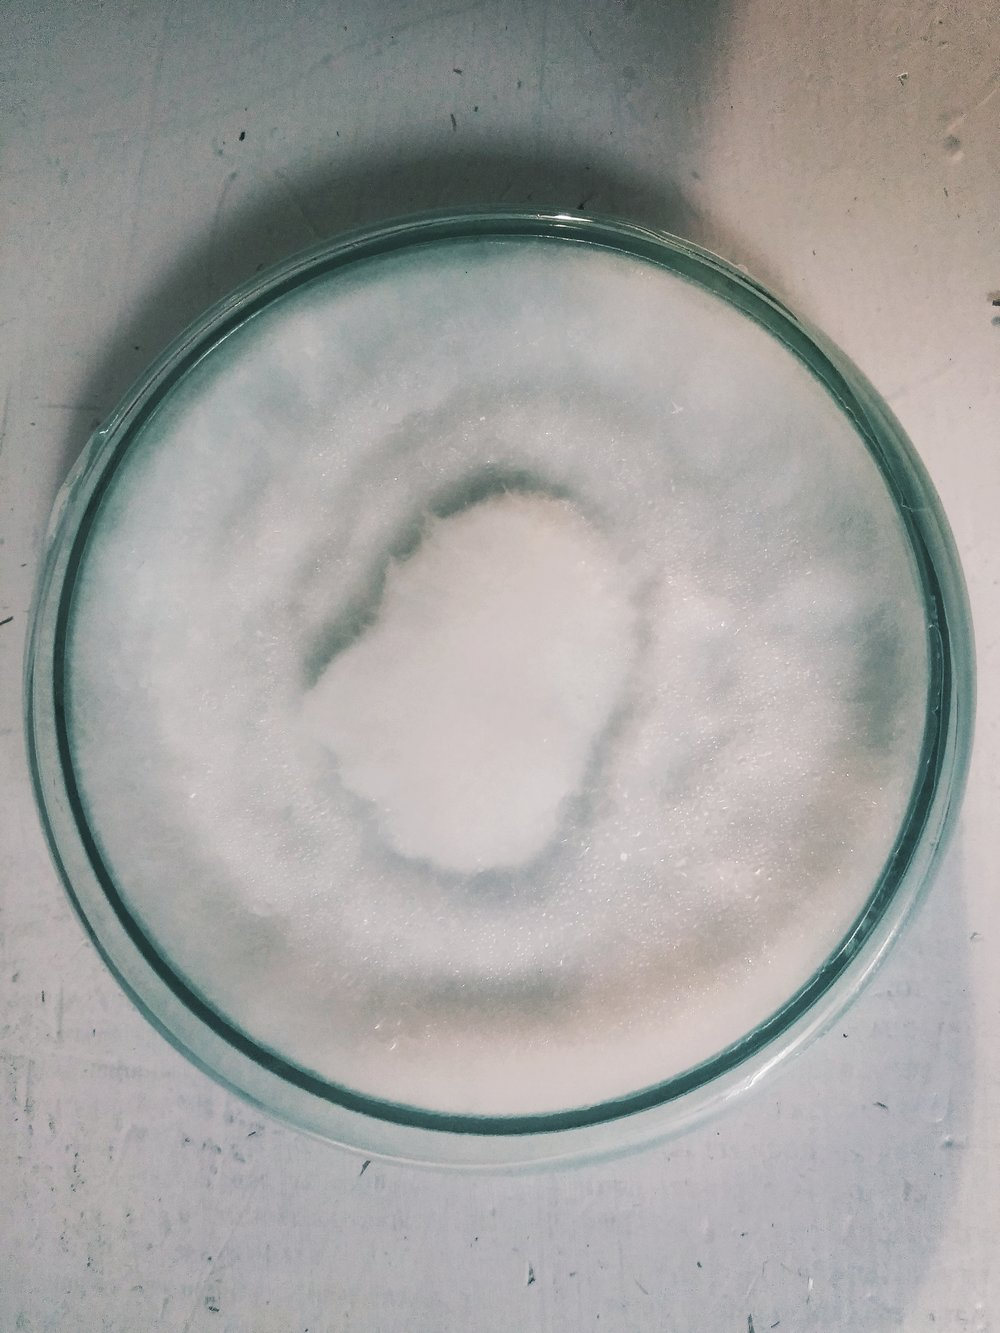 Mycelium growing radially on potato dextrose agar